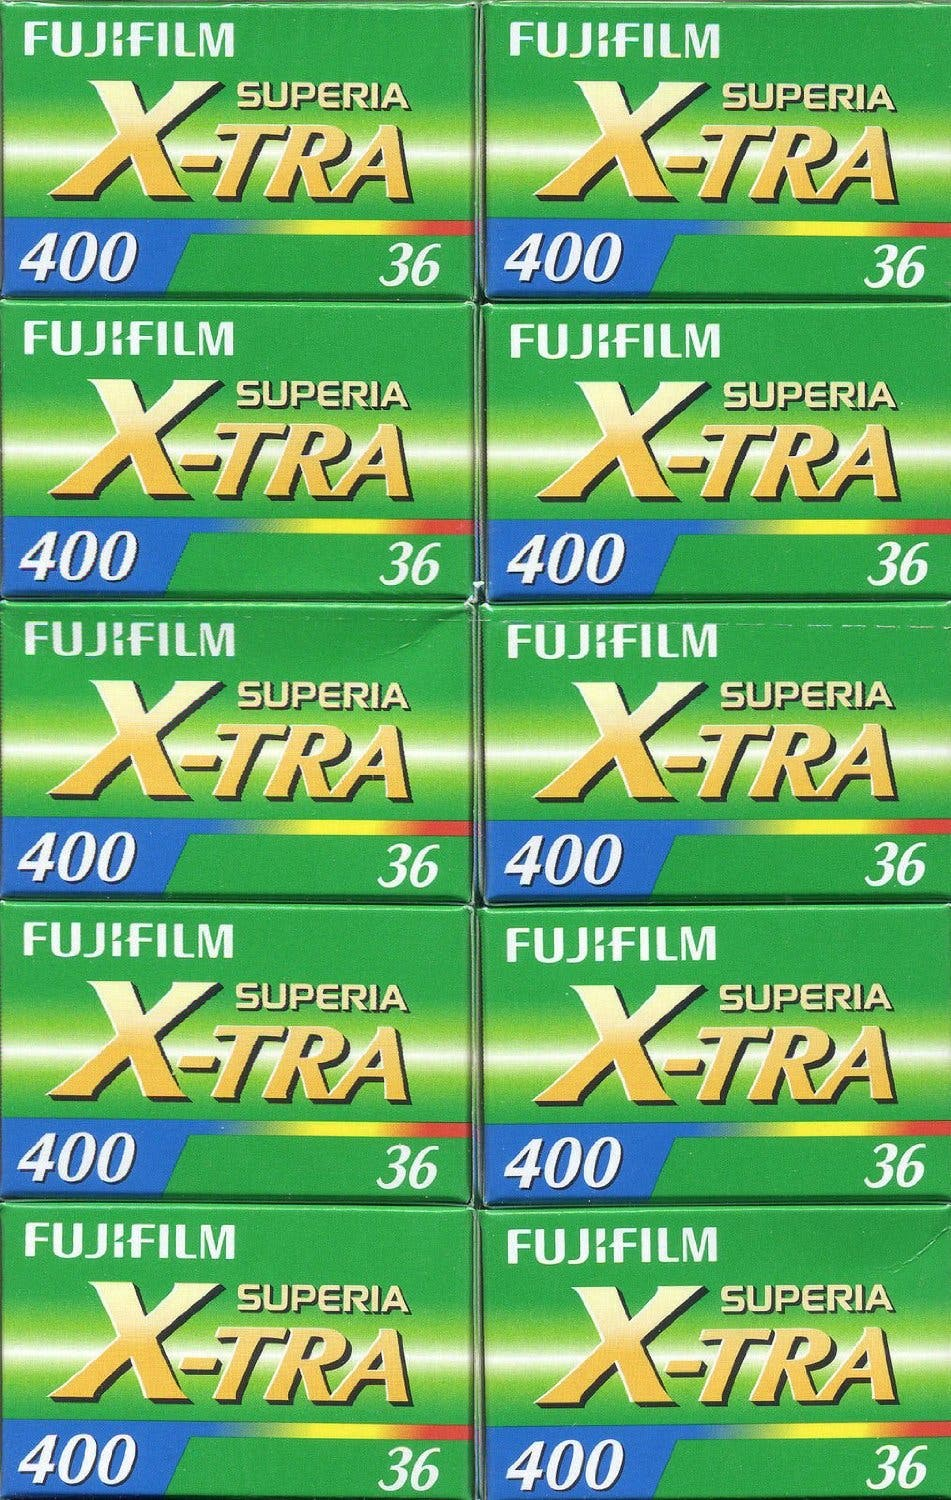 Film Review: Fujifilm Superia (200, 400, 800 and 1600)